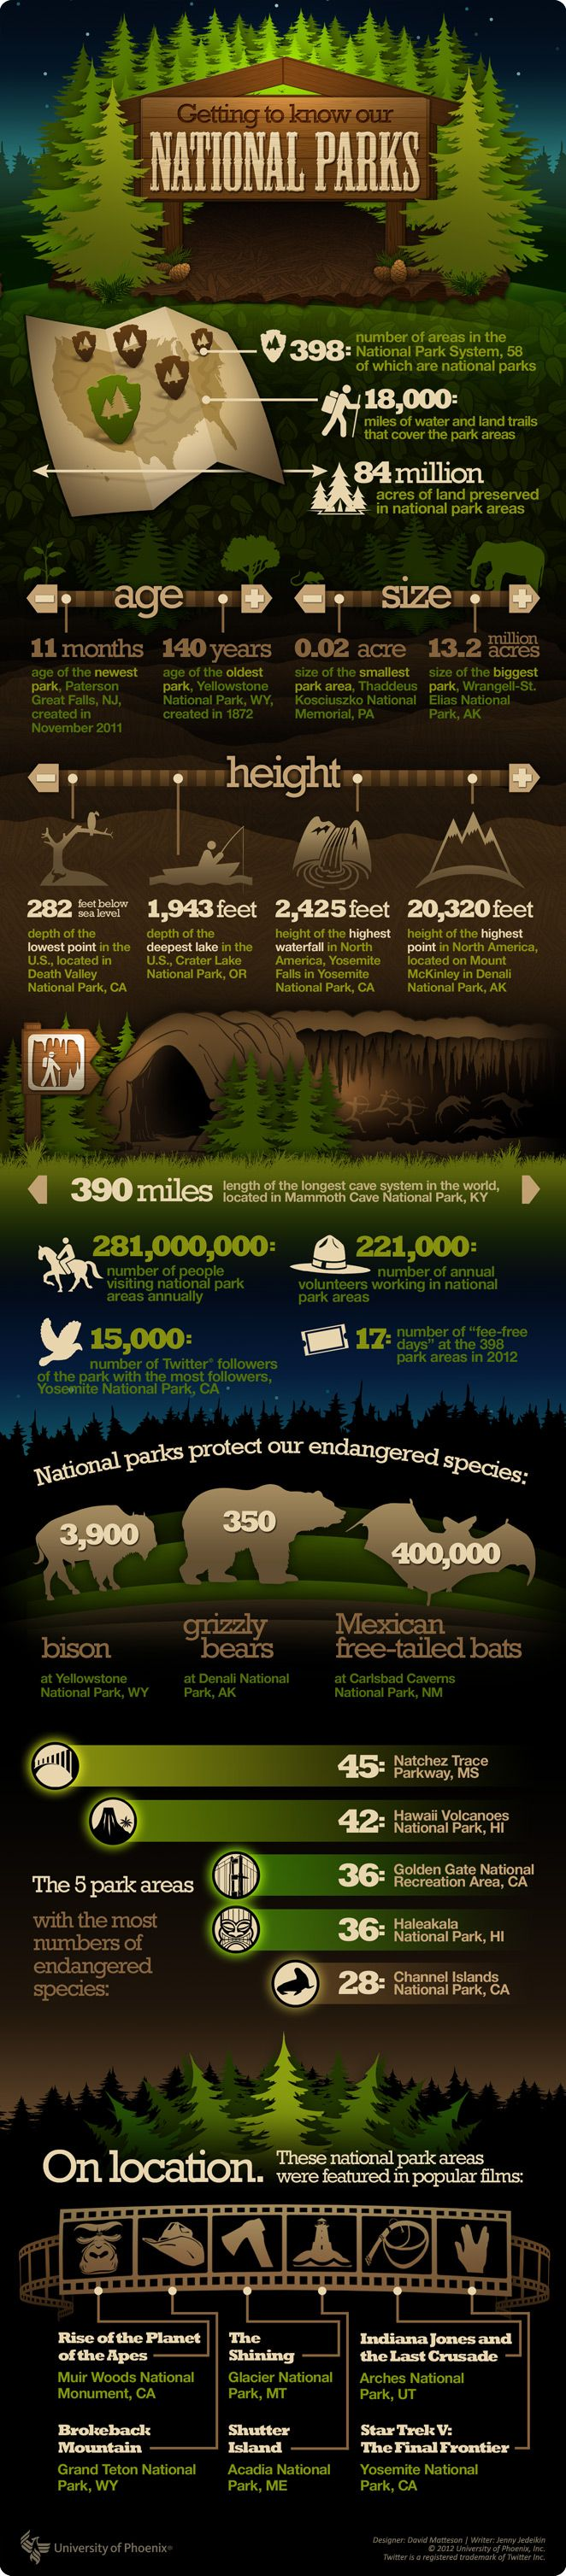 NPF info on our National Park System. - Interesting facts! #AllTrips #nationalparks